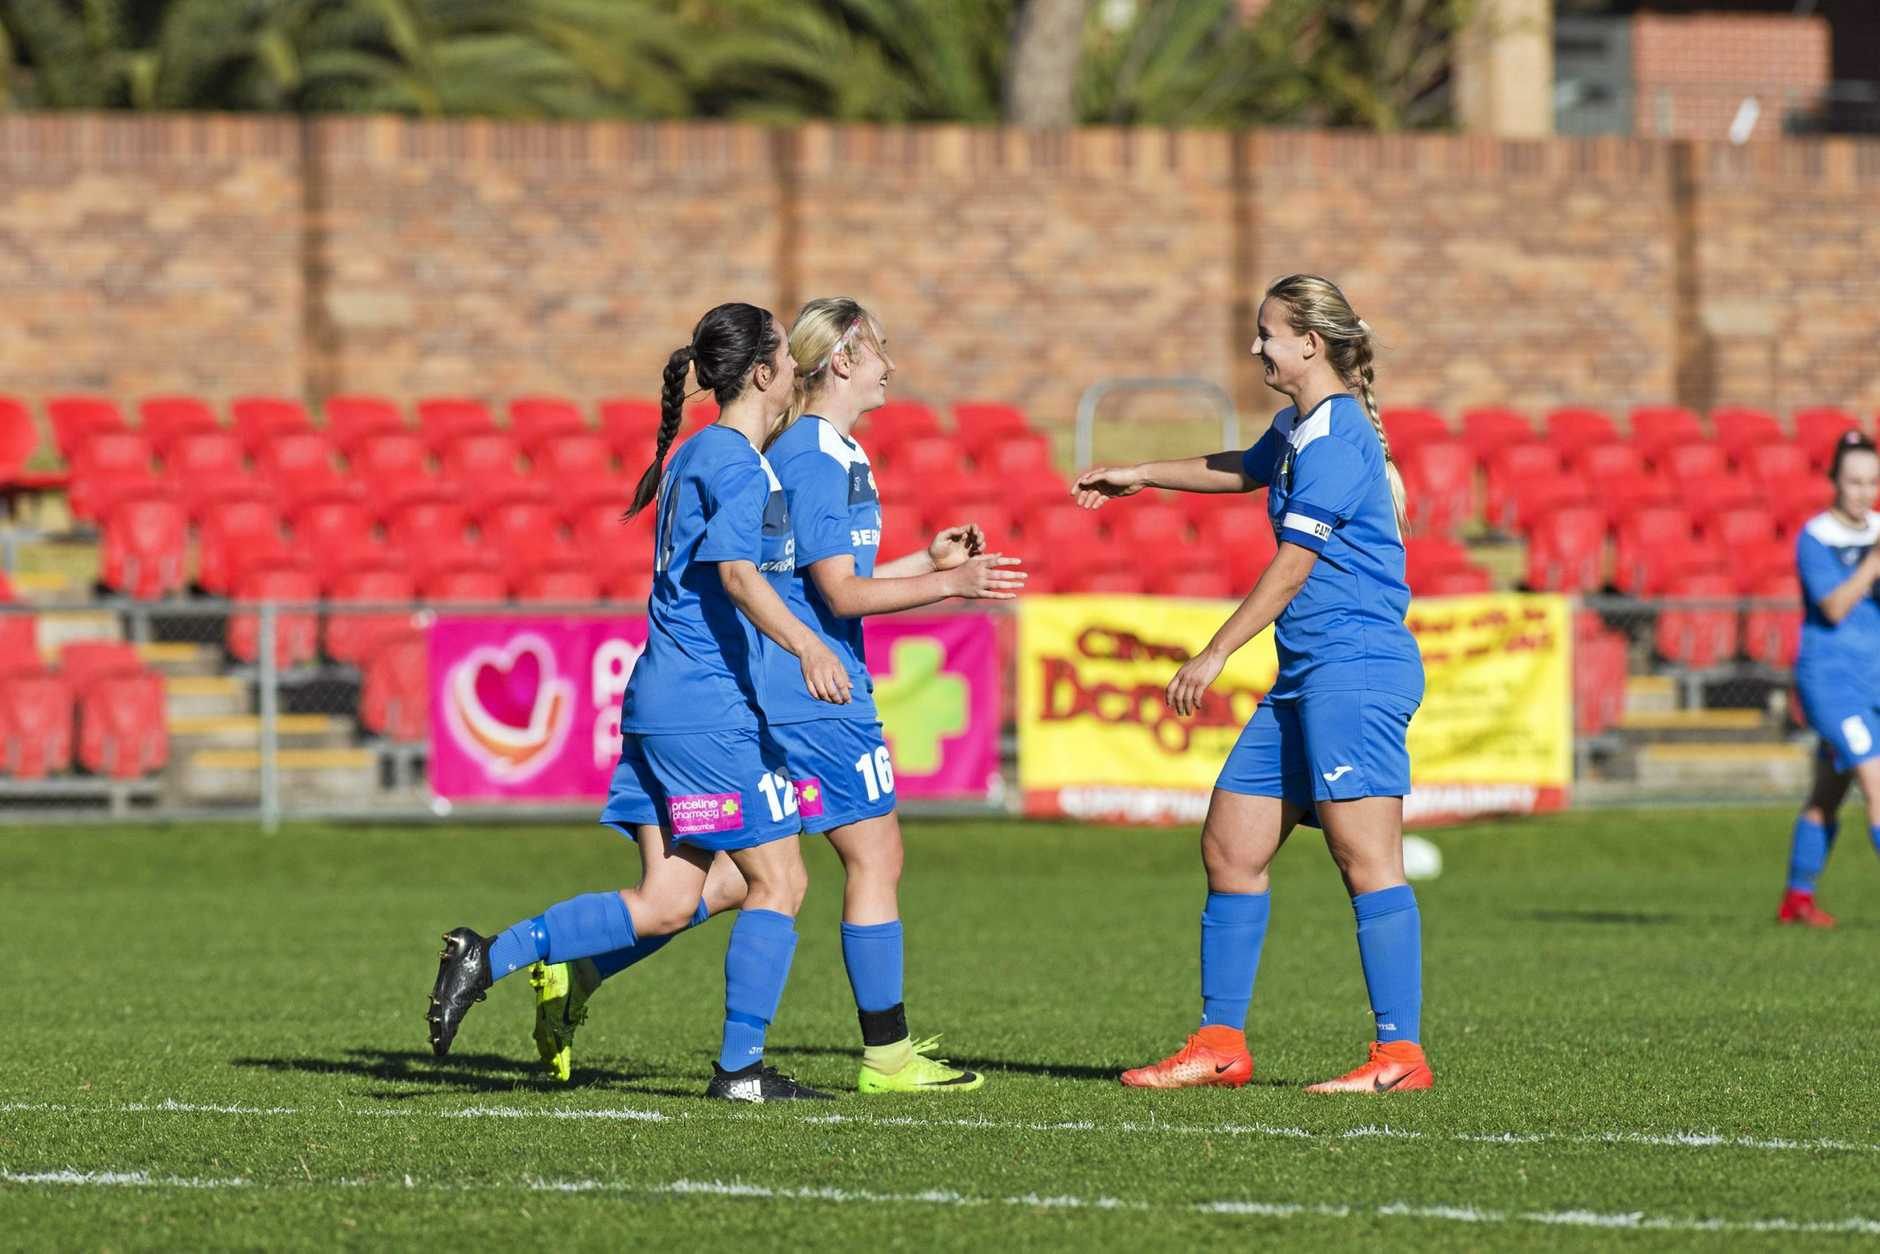 GOOD STRIKE: South West Queensland Thunder women's team players celebrate a goal against Mudgeeraba.